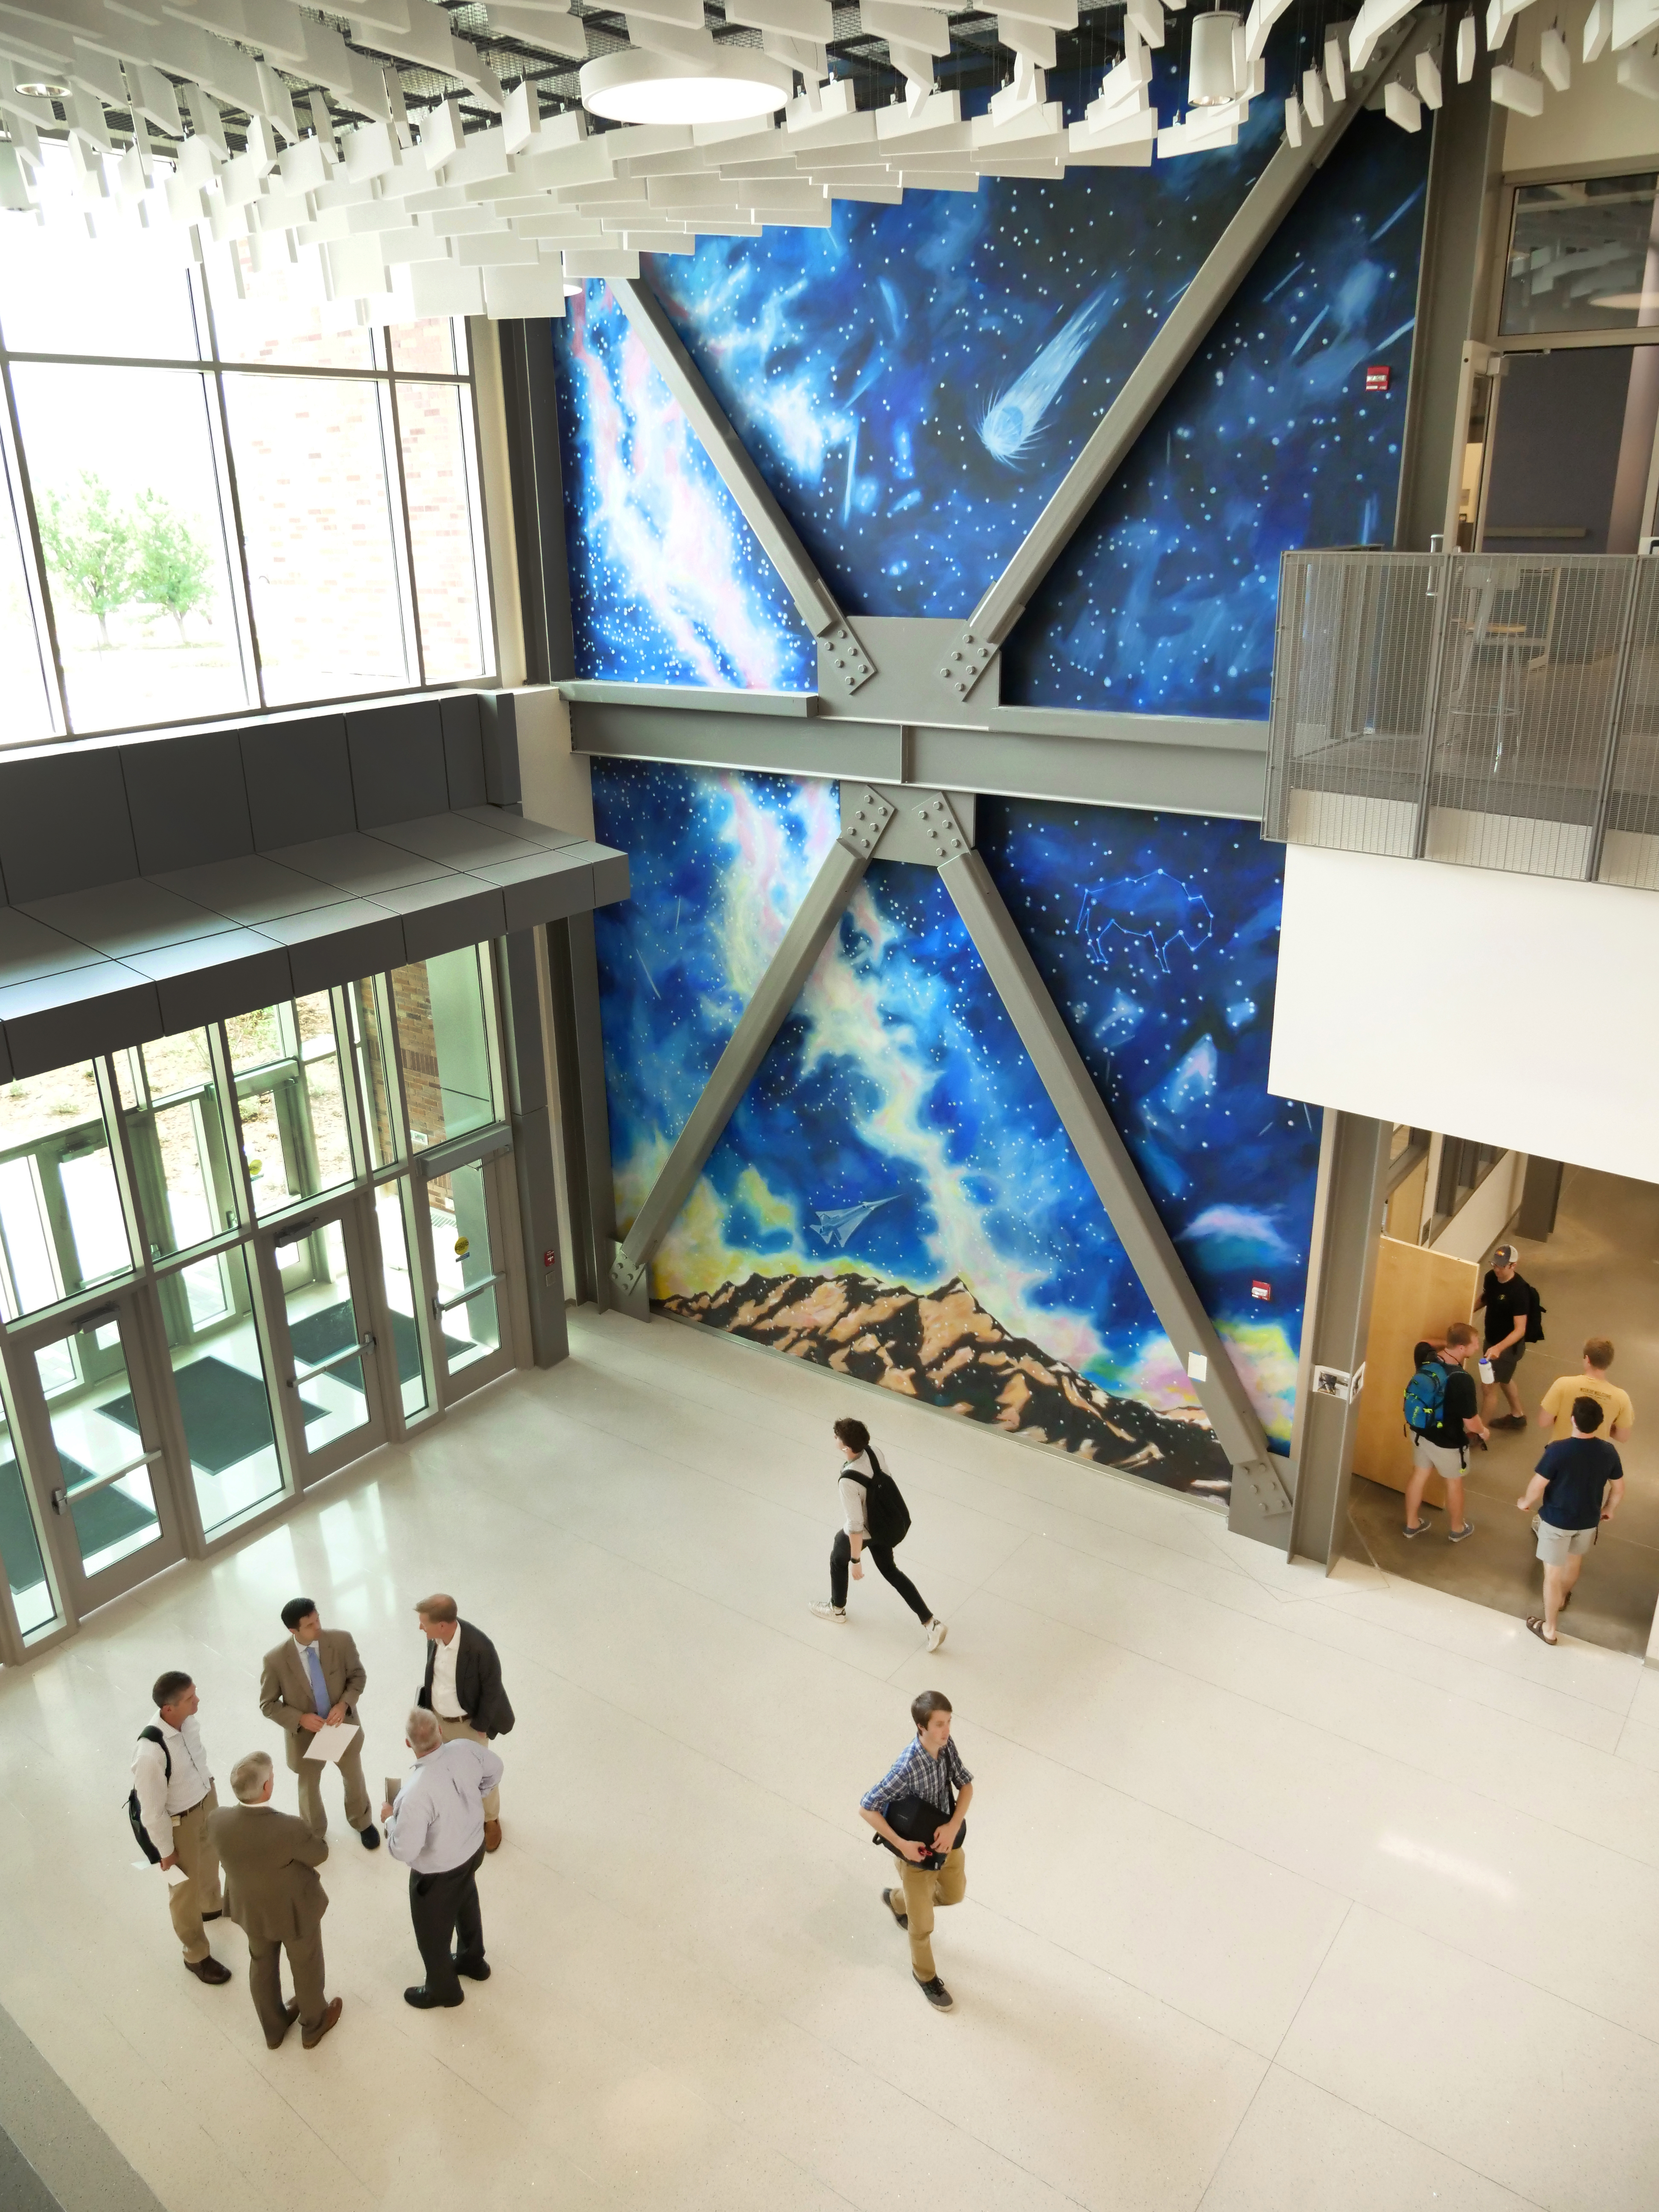 Bumiller mural, Aerospace Engineering Sciences building at CU Boulder